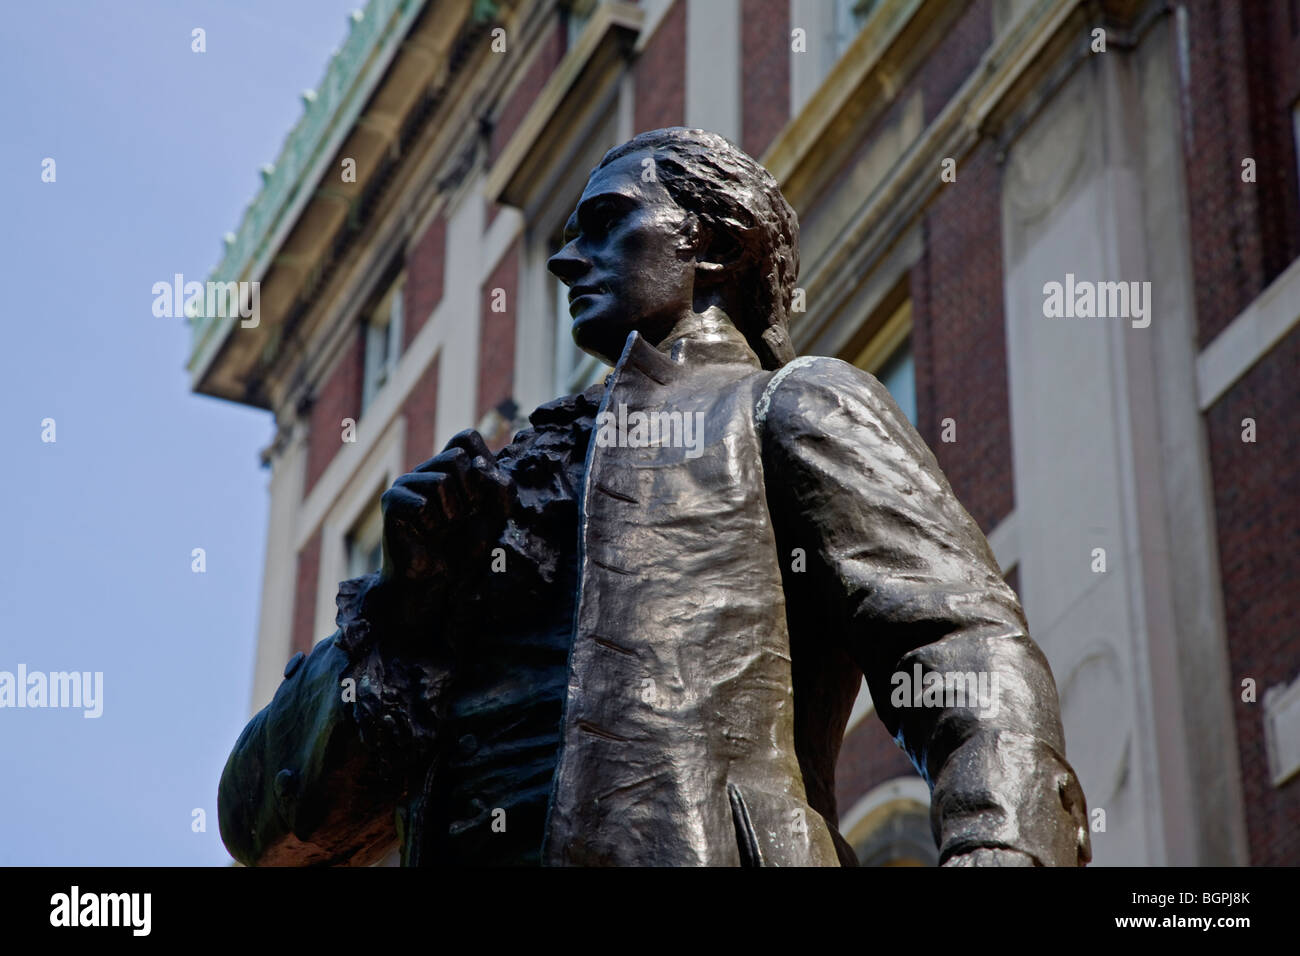 Statue of ALEXANDER HAMILTON in front of a College building at COLUMBIA UNIVERSITY - NEW YORK, NEW YORK - Stock Image